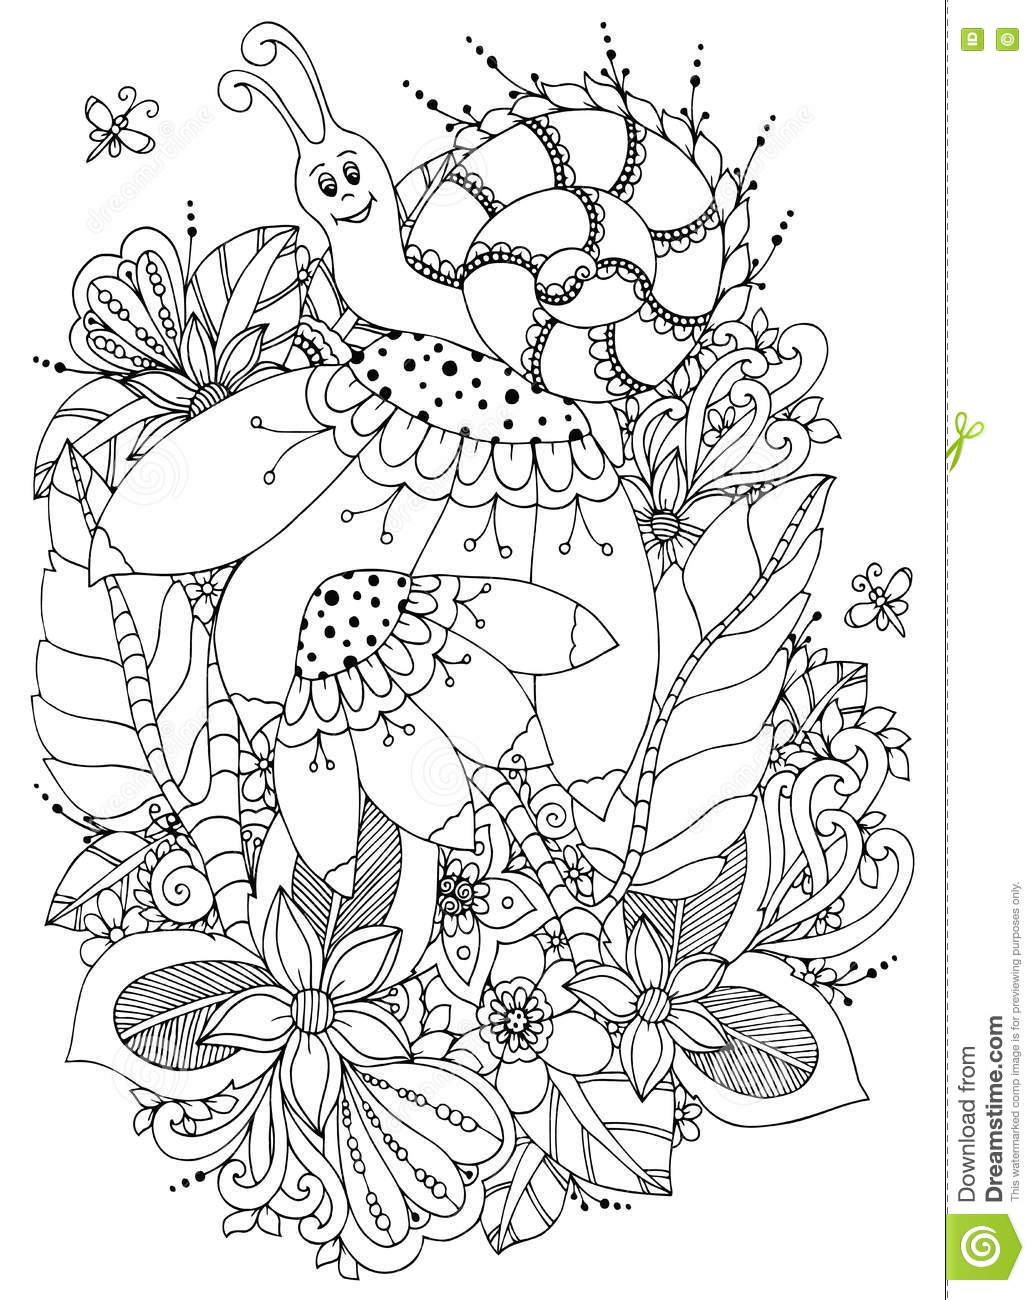 Zen coloring flowers - Vector Illustration Zen Tangle Snail On Flowers Doodle Drawing Coloring Book Anti Stress For